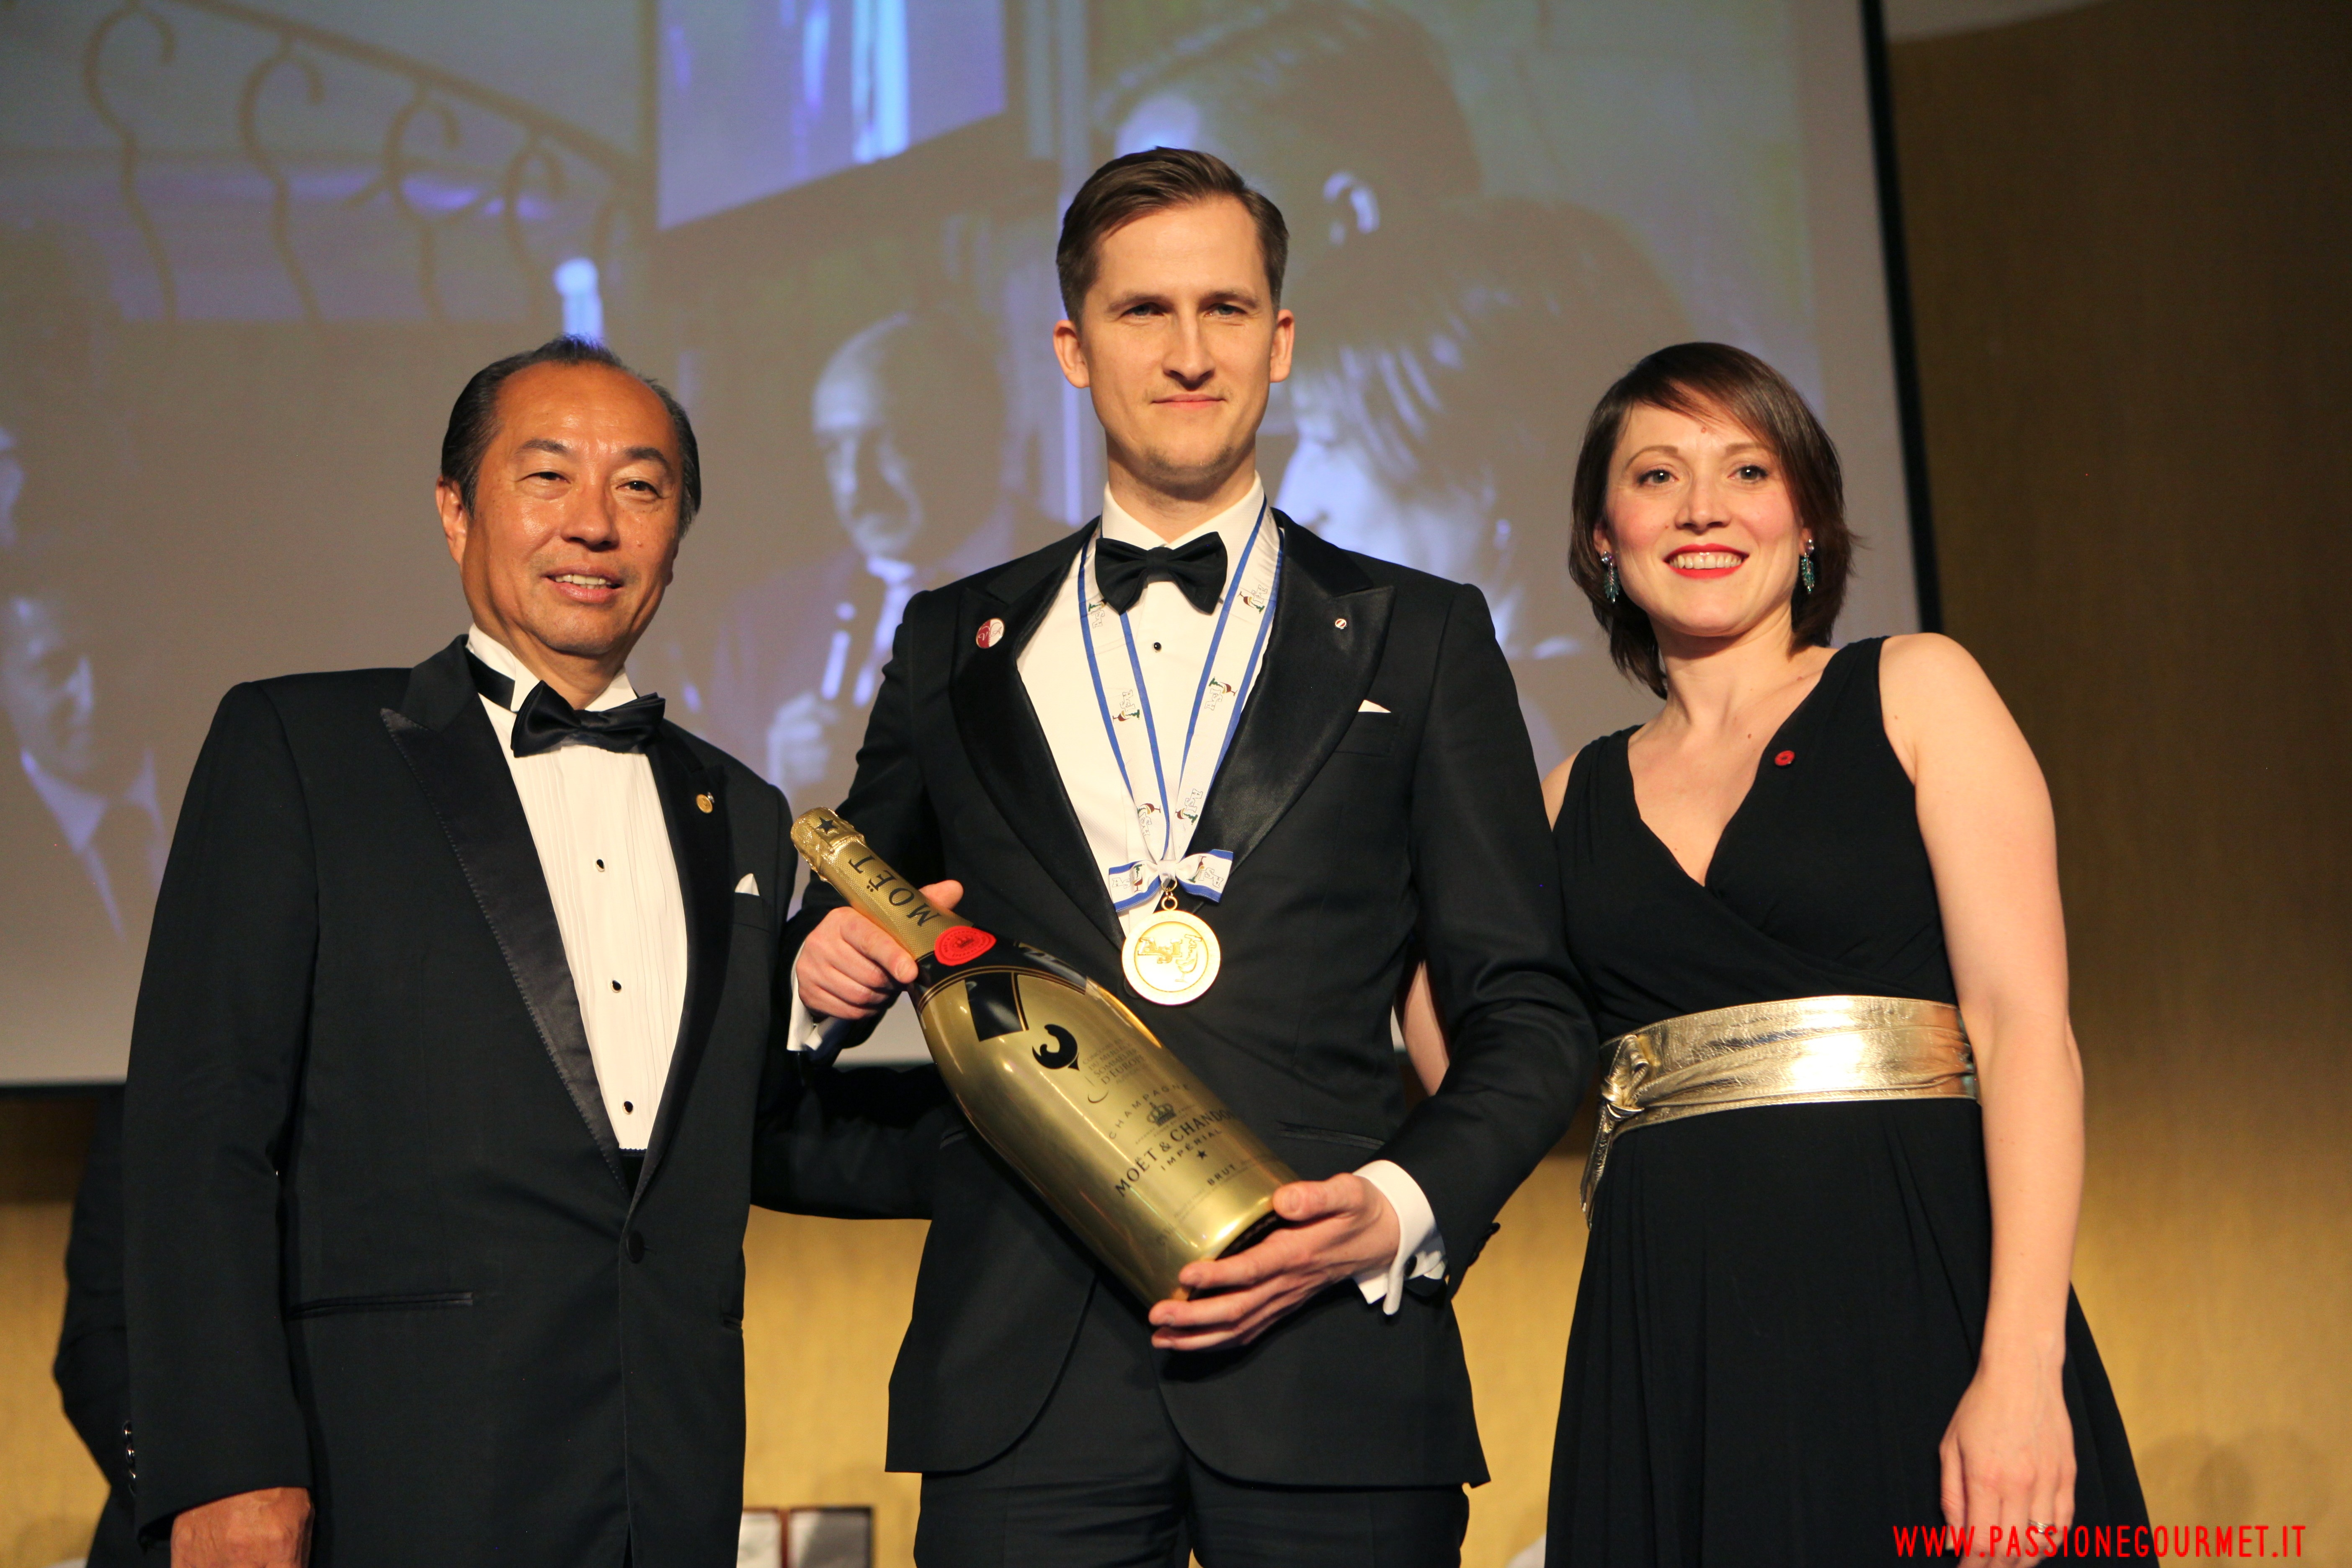 Raimonds Tomsons, The Best Sommelier of Europe & Africa 2017 – Premio Moët & Chandon